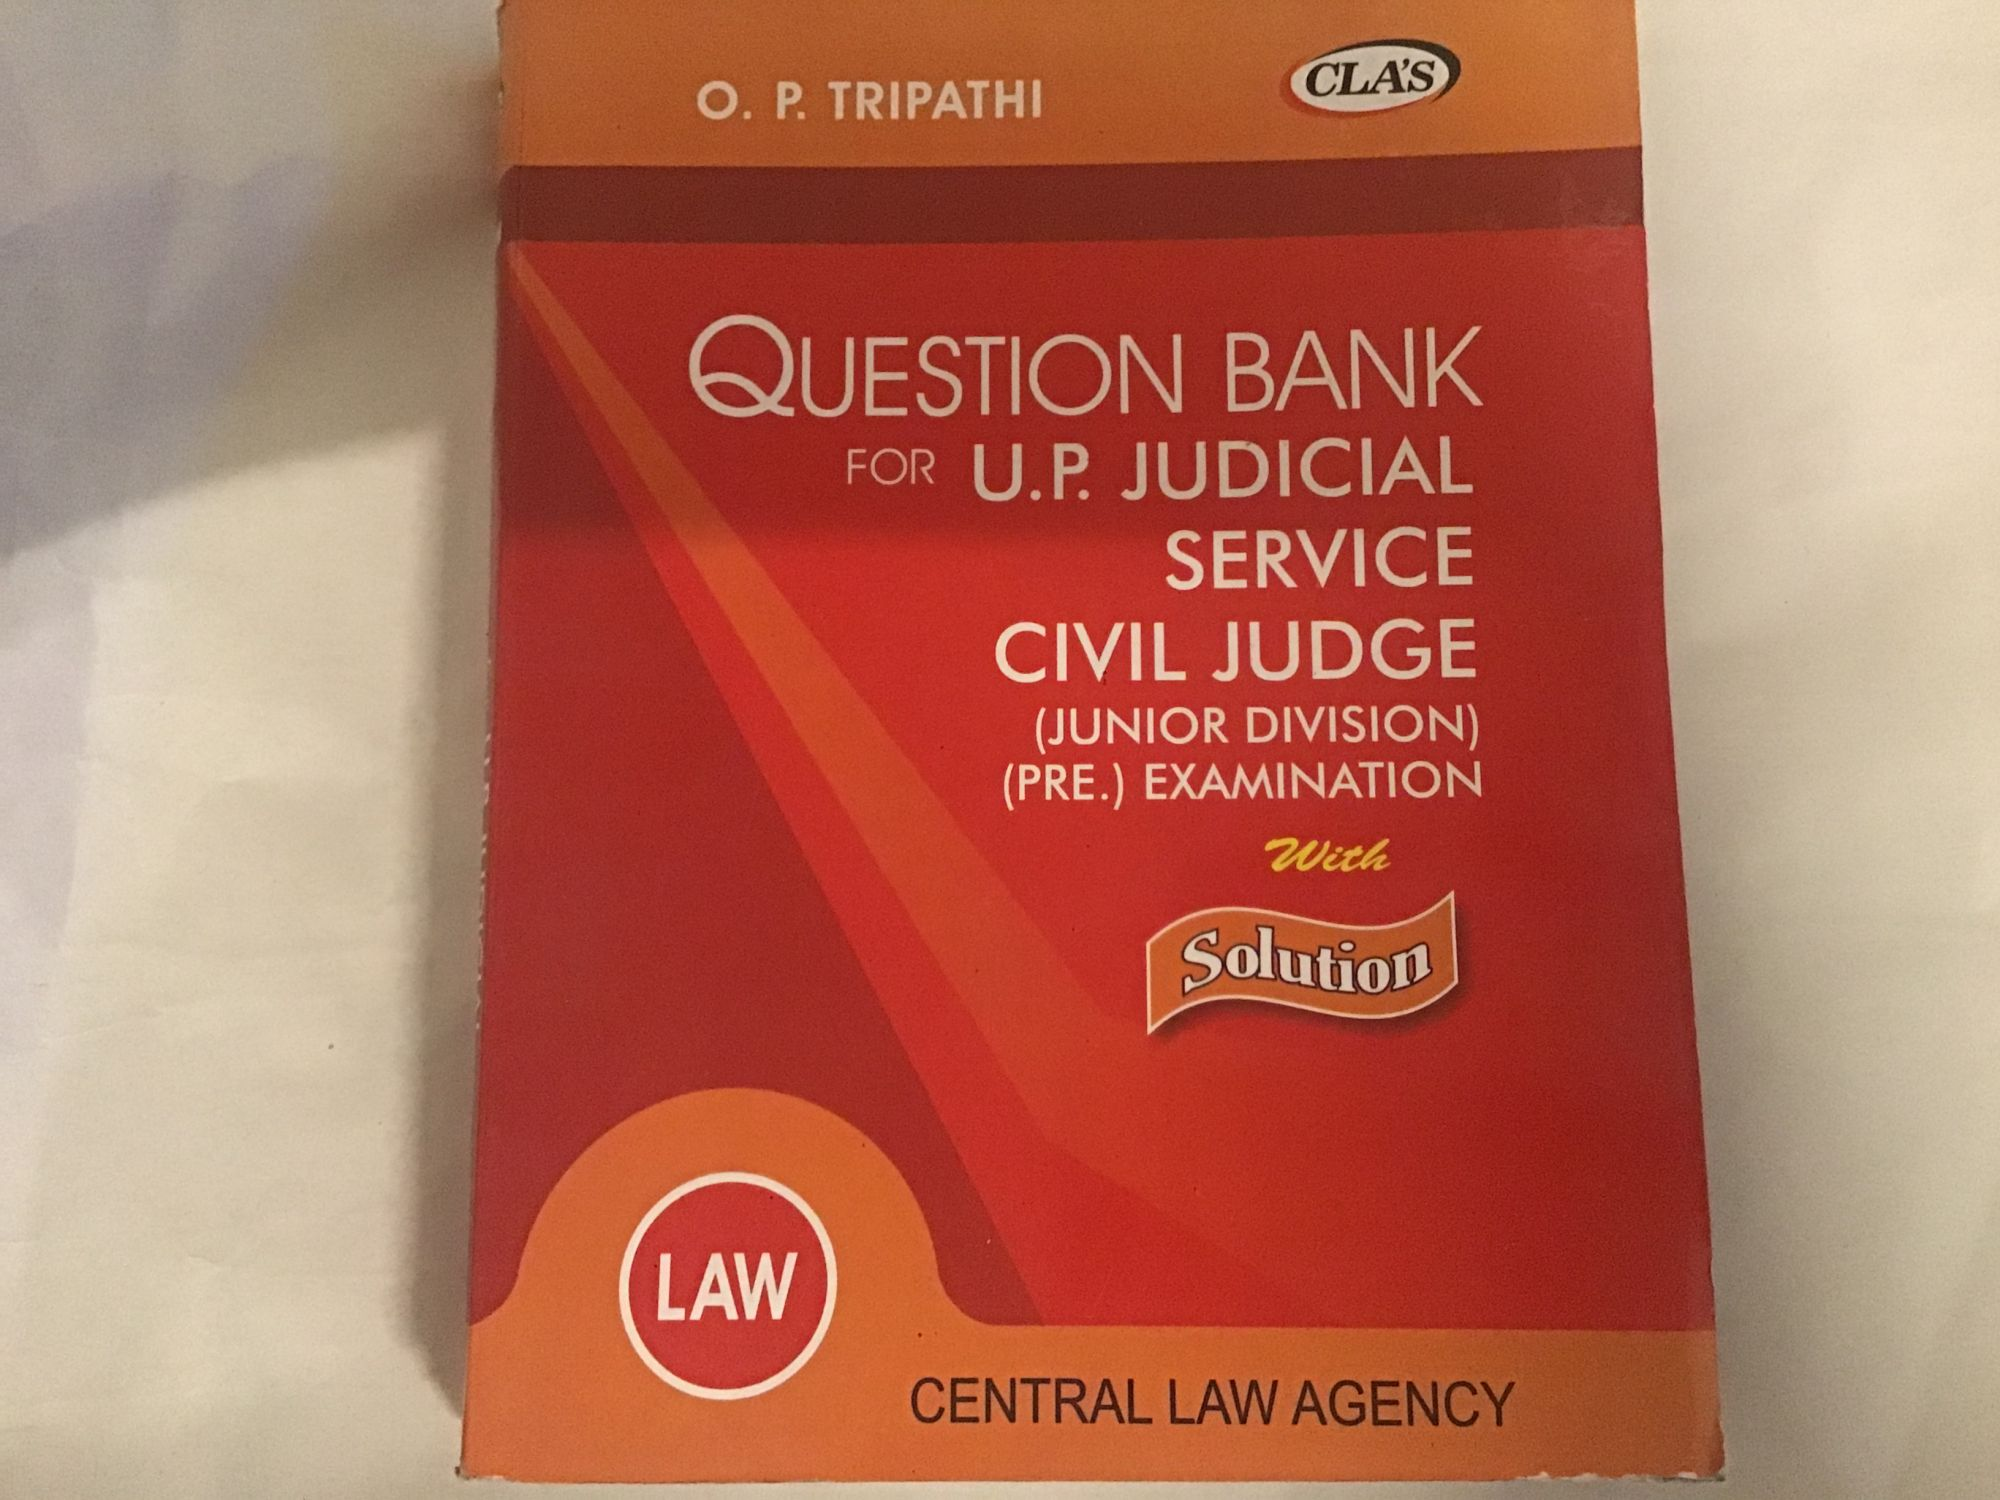 Question Bank For UP Judicial Service Civil Judge Junior Divison Pre Examination By O.P. Tripathi